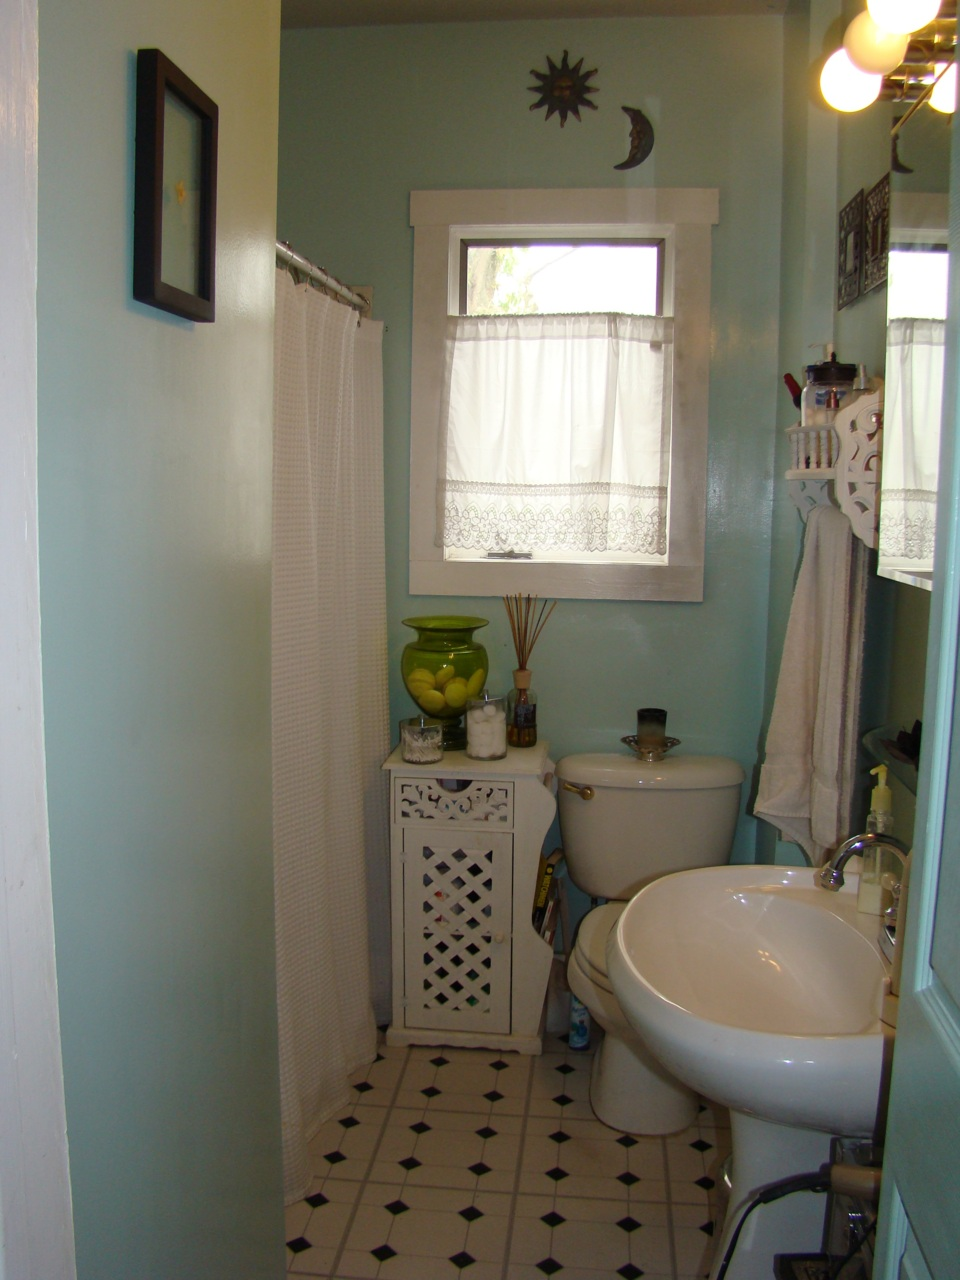 I really wished I had a before picture of the smallest bathroom alive.  It used to be sponge painted macaroni yellow and turquoise. YIKES.